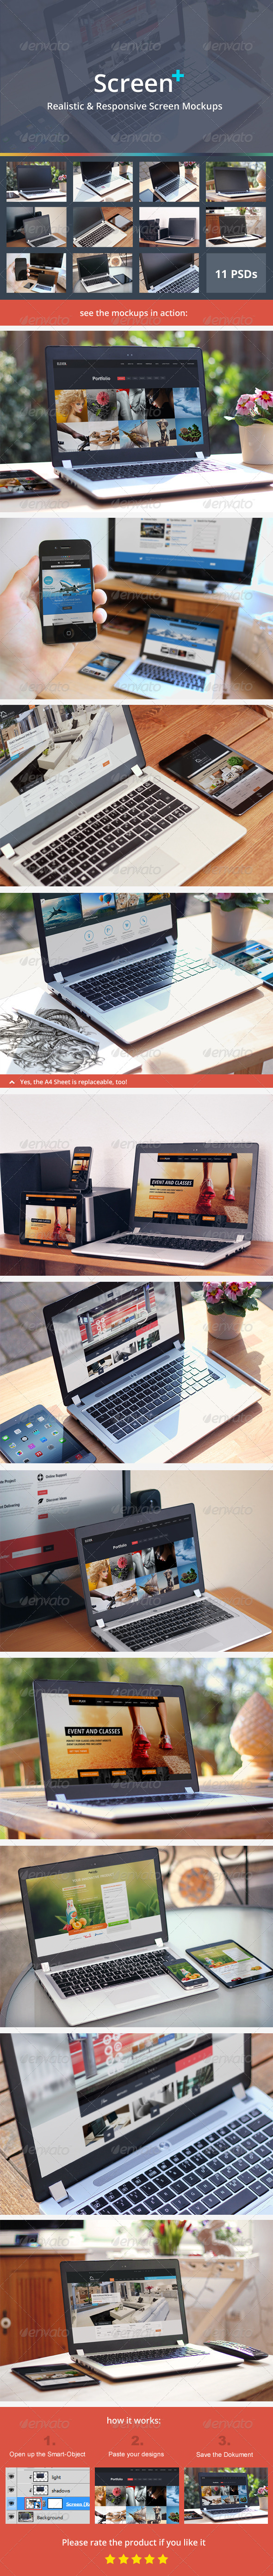 ScreenPlus - Realistic & Responsive Screen Mockups - Multiple Displays